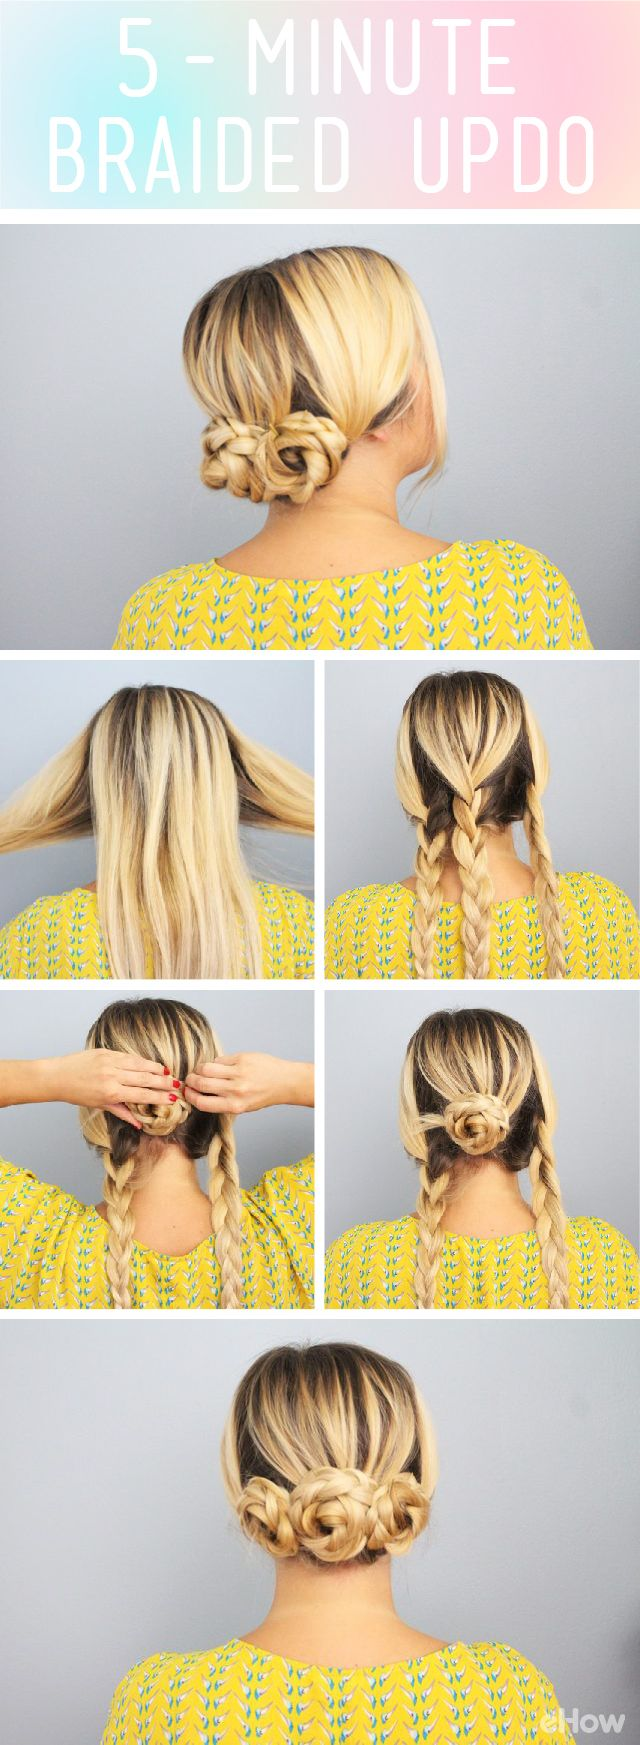 483 best images about hair on pinterest | rag curls tutorial, bob